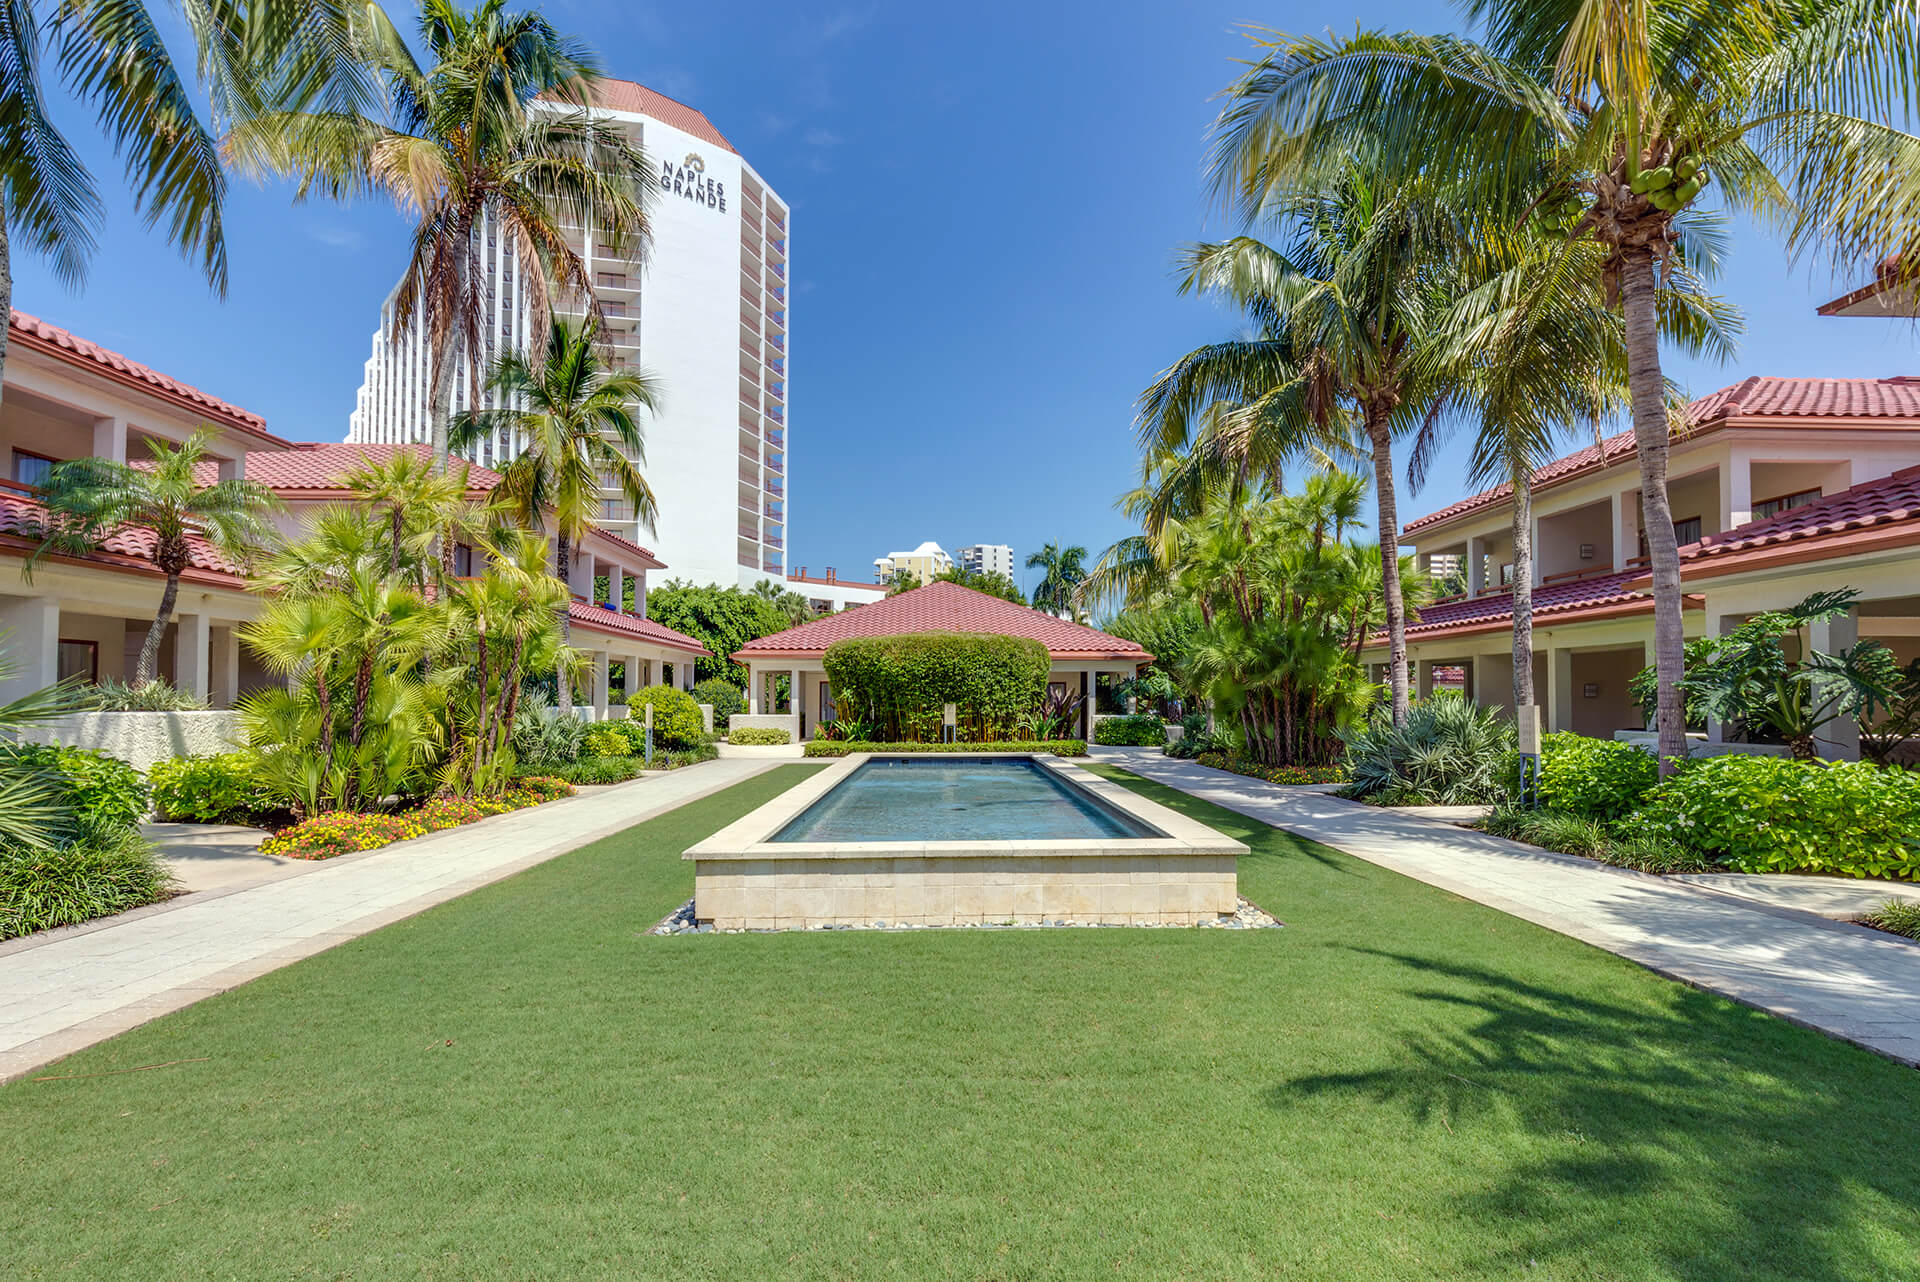 Secluded Floridian Gardens With Ious Lawns And Reflecting Pools Naples Grande Beach Resort